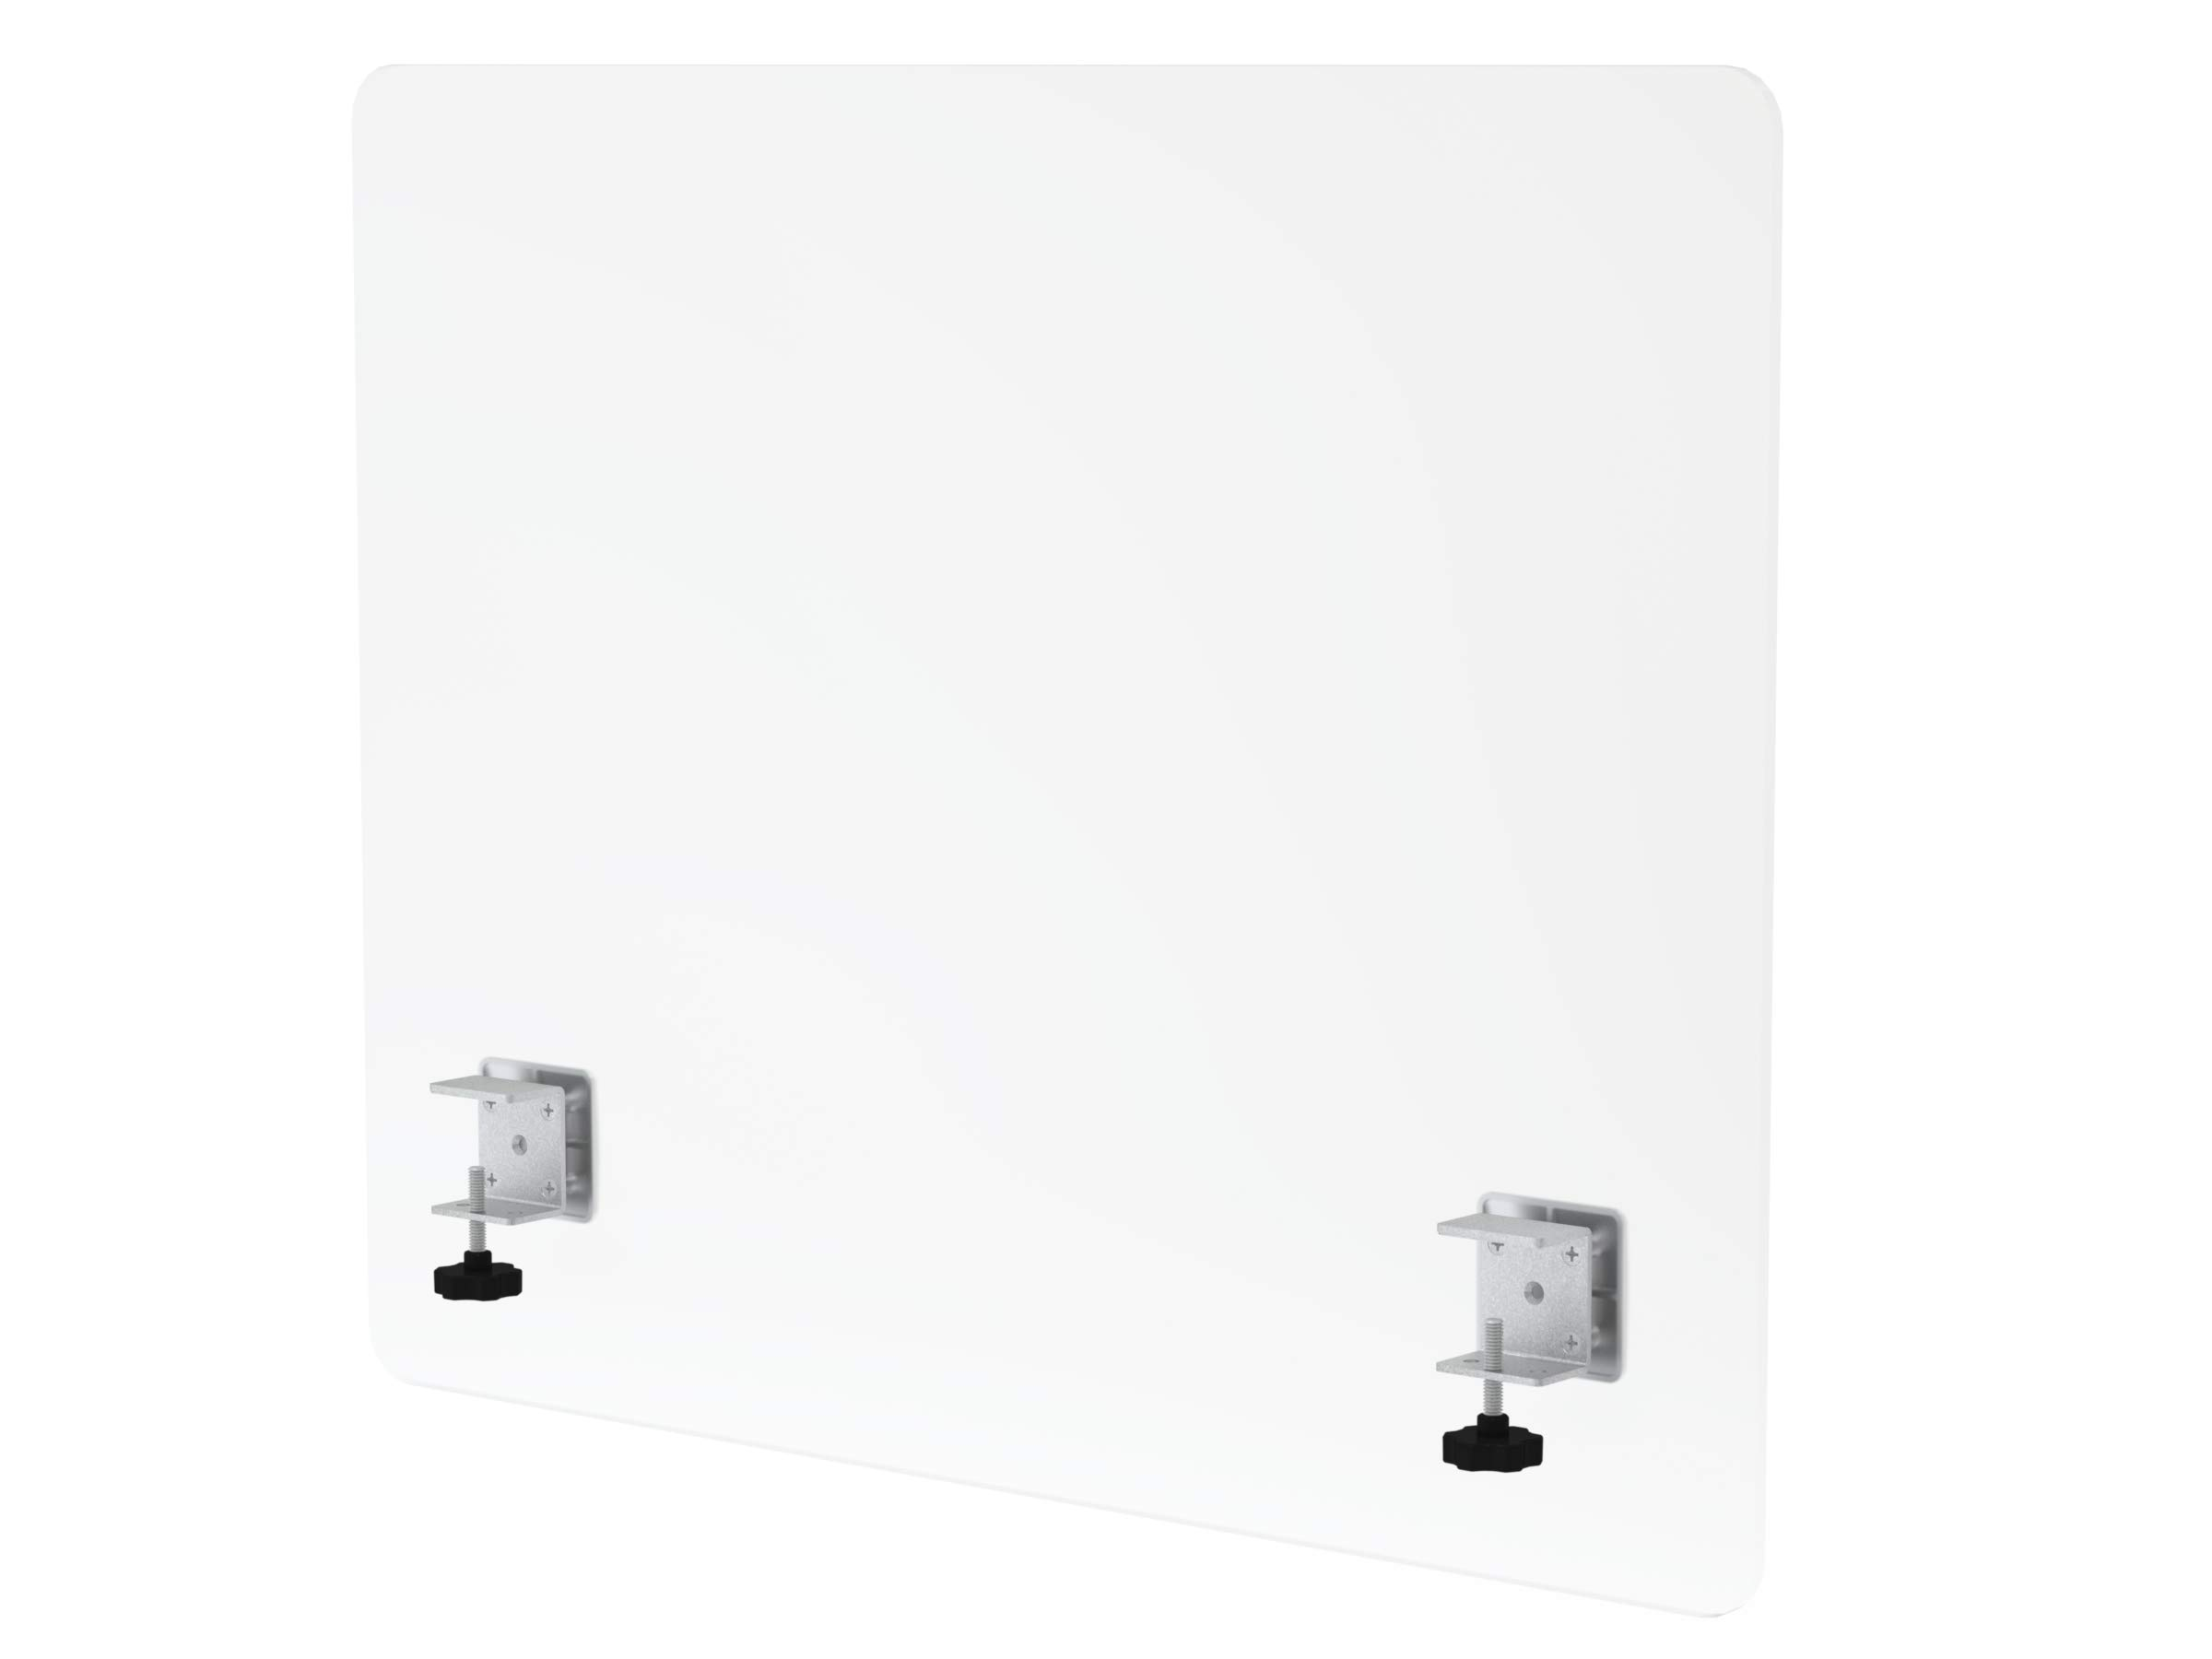 """VaRoom Privacy Partition, Frosted Acrylic Clamp-on Desk Divider – 30"""" W x 24""""H Privacy Desk Mounted Cubicle Panel by VaRoom (Image #1)"""